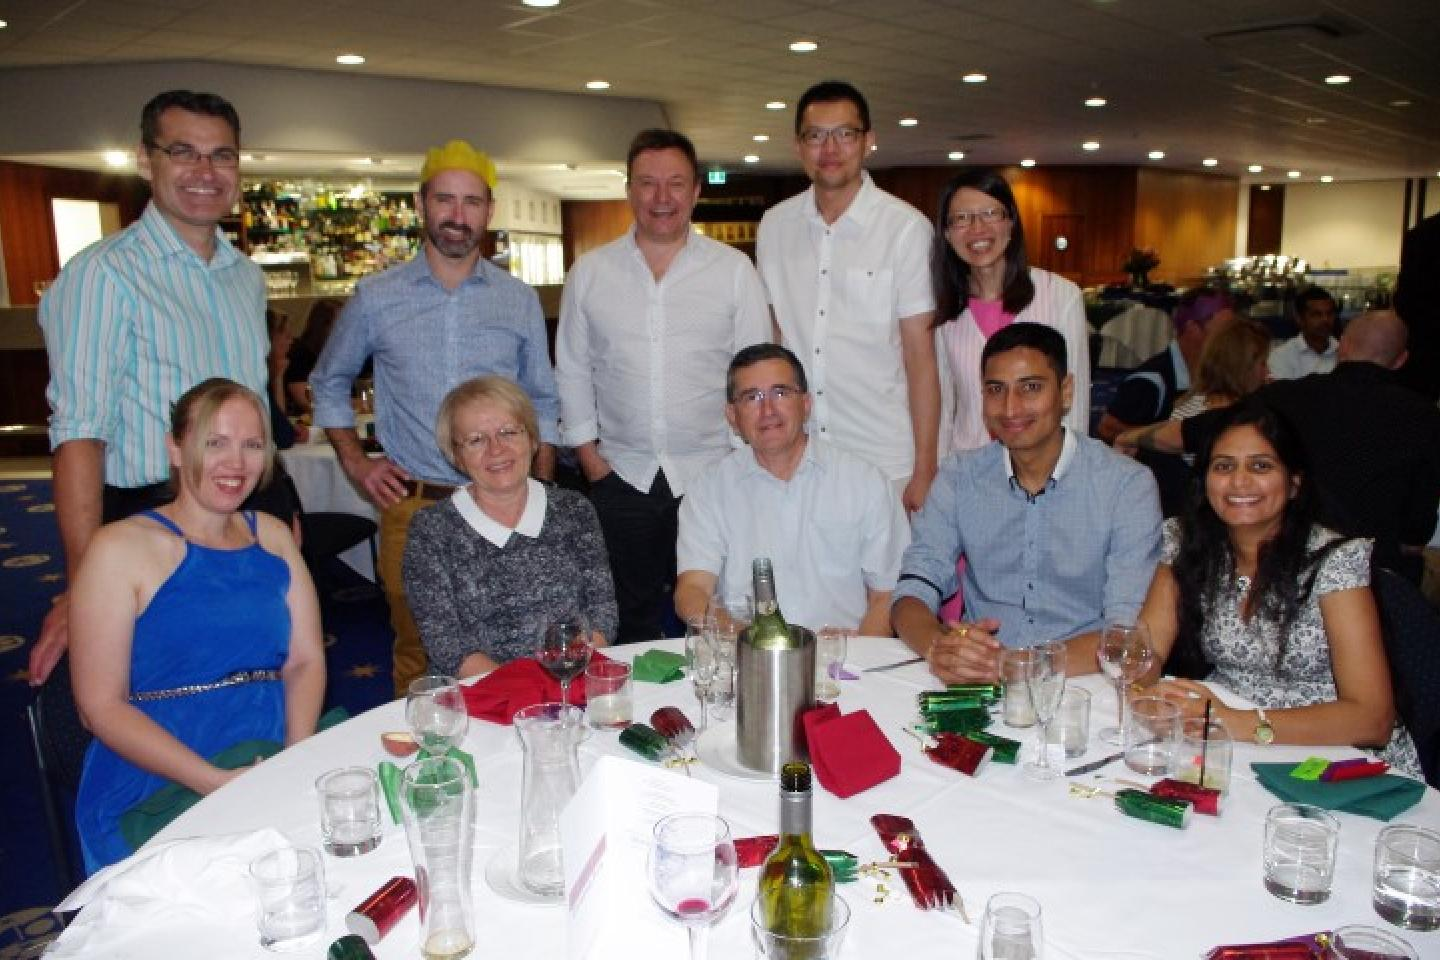 Cindy (left) and Adam Baldwin (standing), Borka Rajkovic, Carl Vance and Richard Woode (standing), Slobodan Rajkovic, Hung Lim and Bee Tan (standing) and Krunal and Zalak Patel.